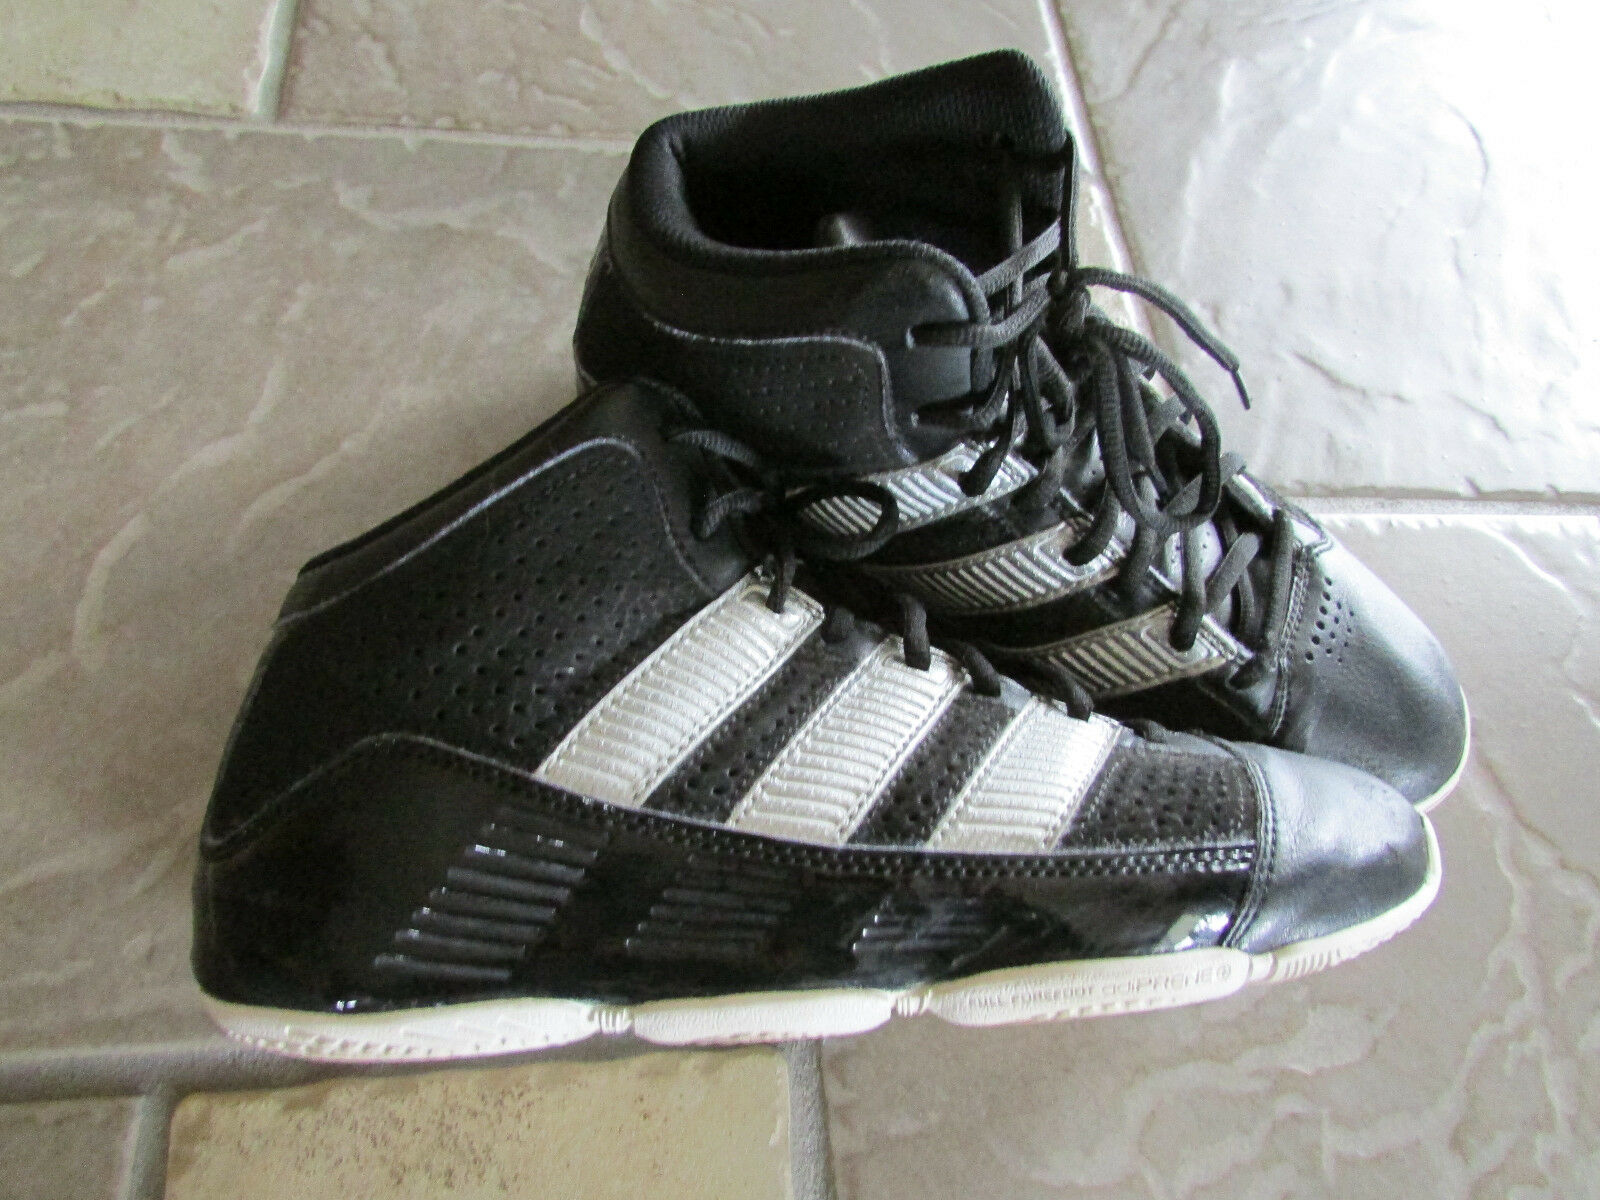 ADIDAS BASKETBALL SHOES  ATHLETIC SHOES SNEAKERS MENS 7.5 STYLE 779001 FREE SHIP Seasonal price cuts, discount benefits